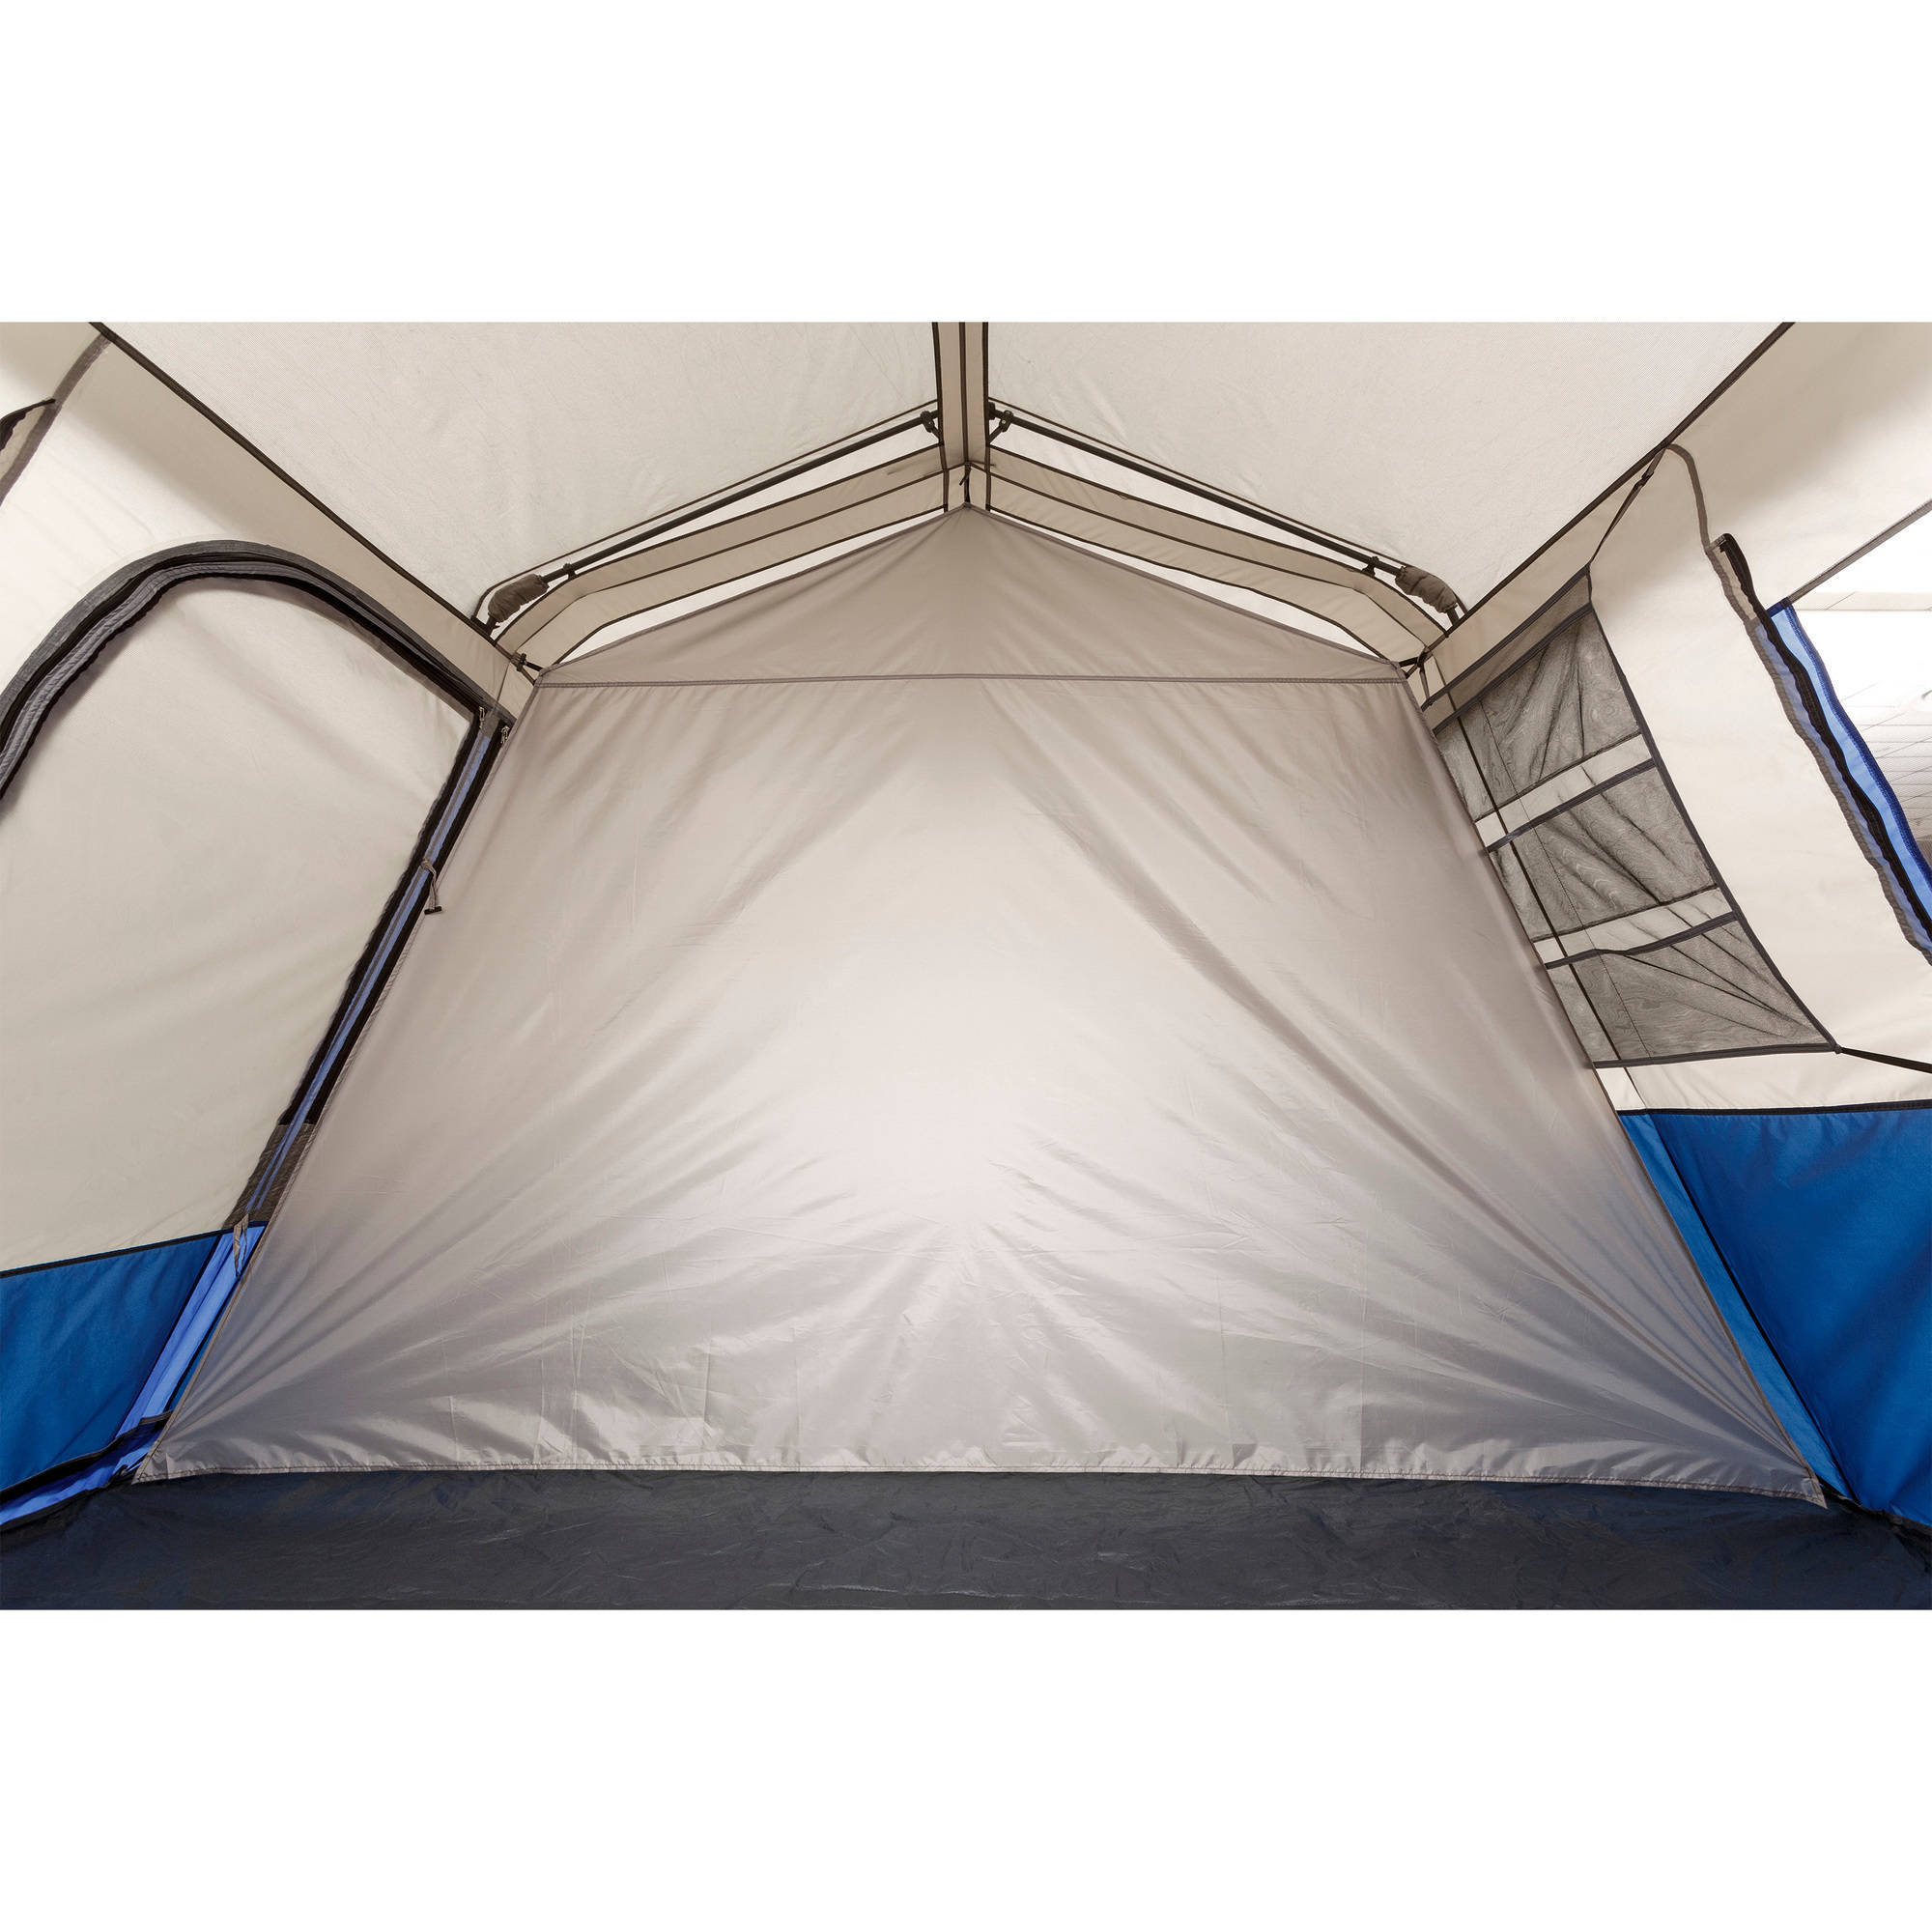 Ozark Trail 10 Person 2 Room Instant Cabin Tent Image 5 of 9  sc 1 st  Walmart & Ozark Trail 10 Person 2 Room Instant Cabin Tent - Walmart.com